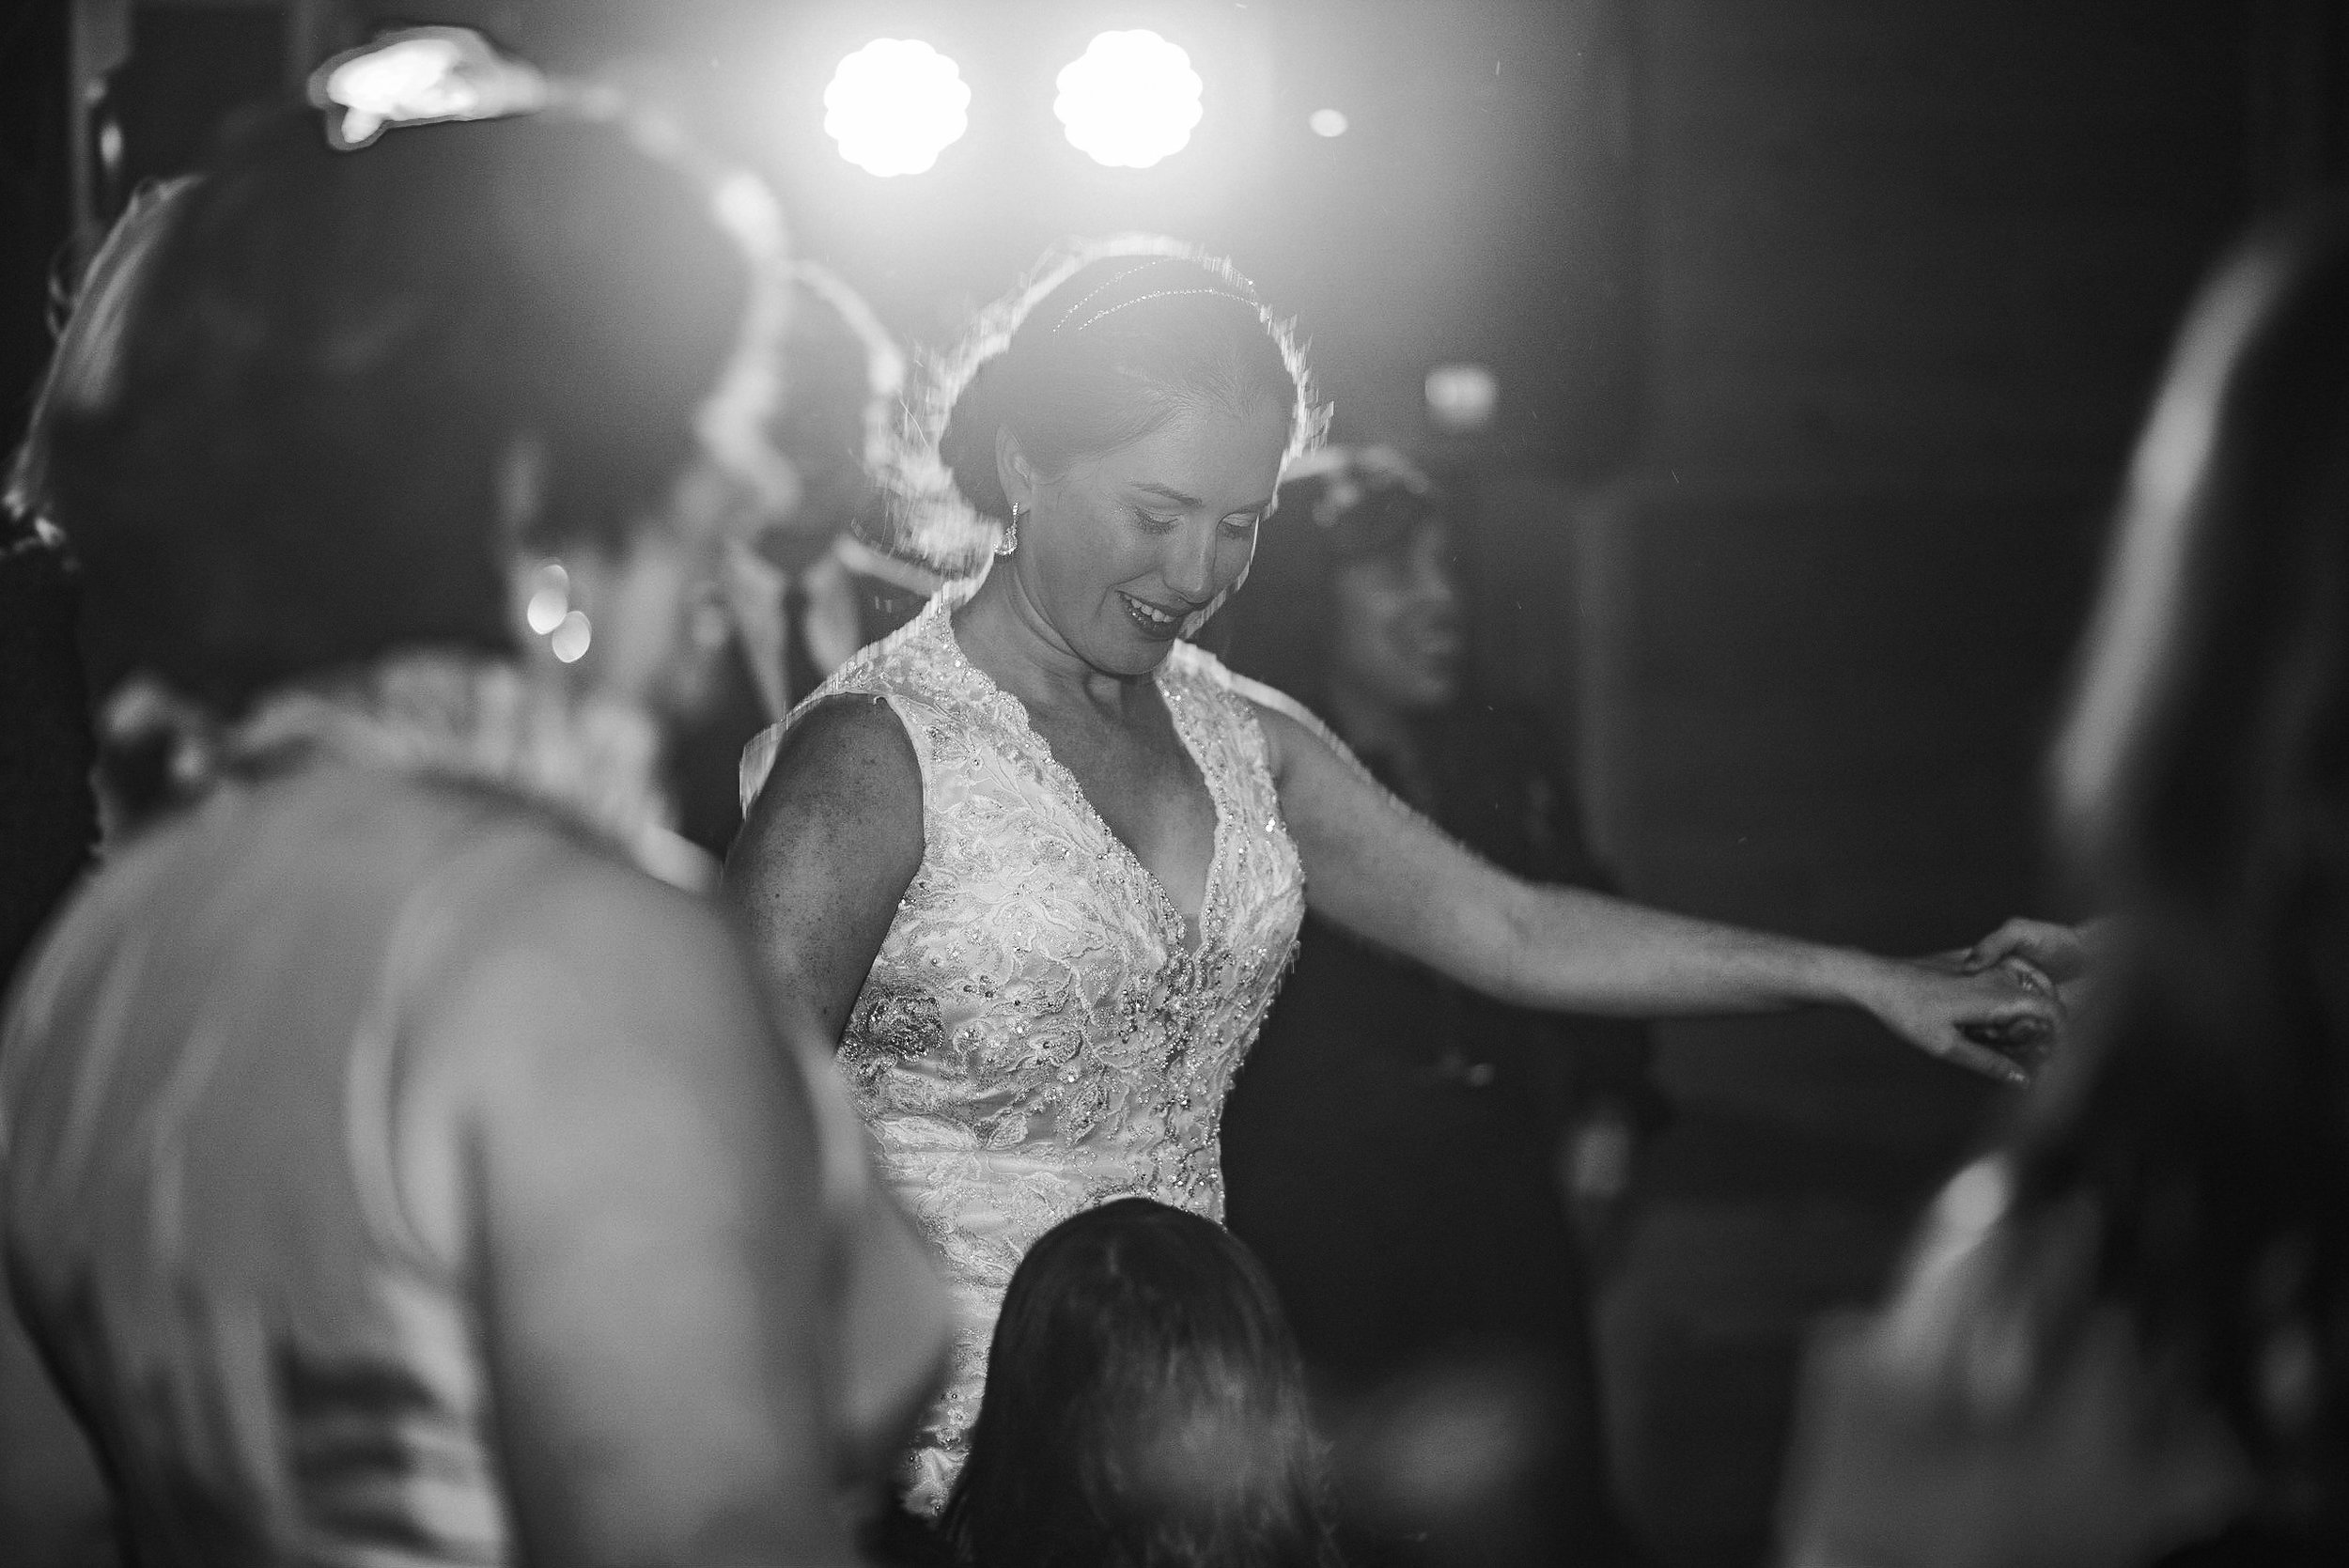 Bride dancing in black and white